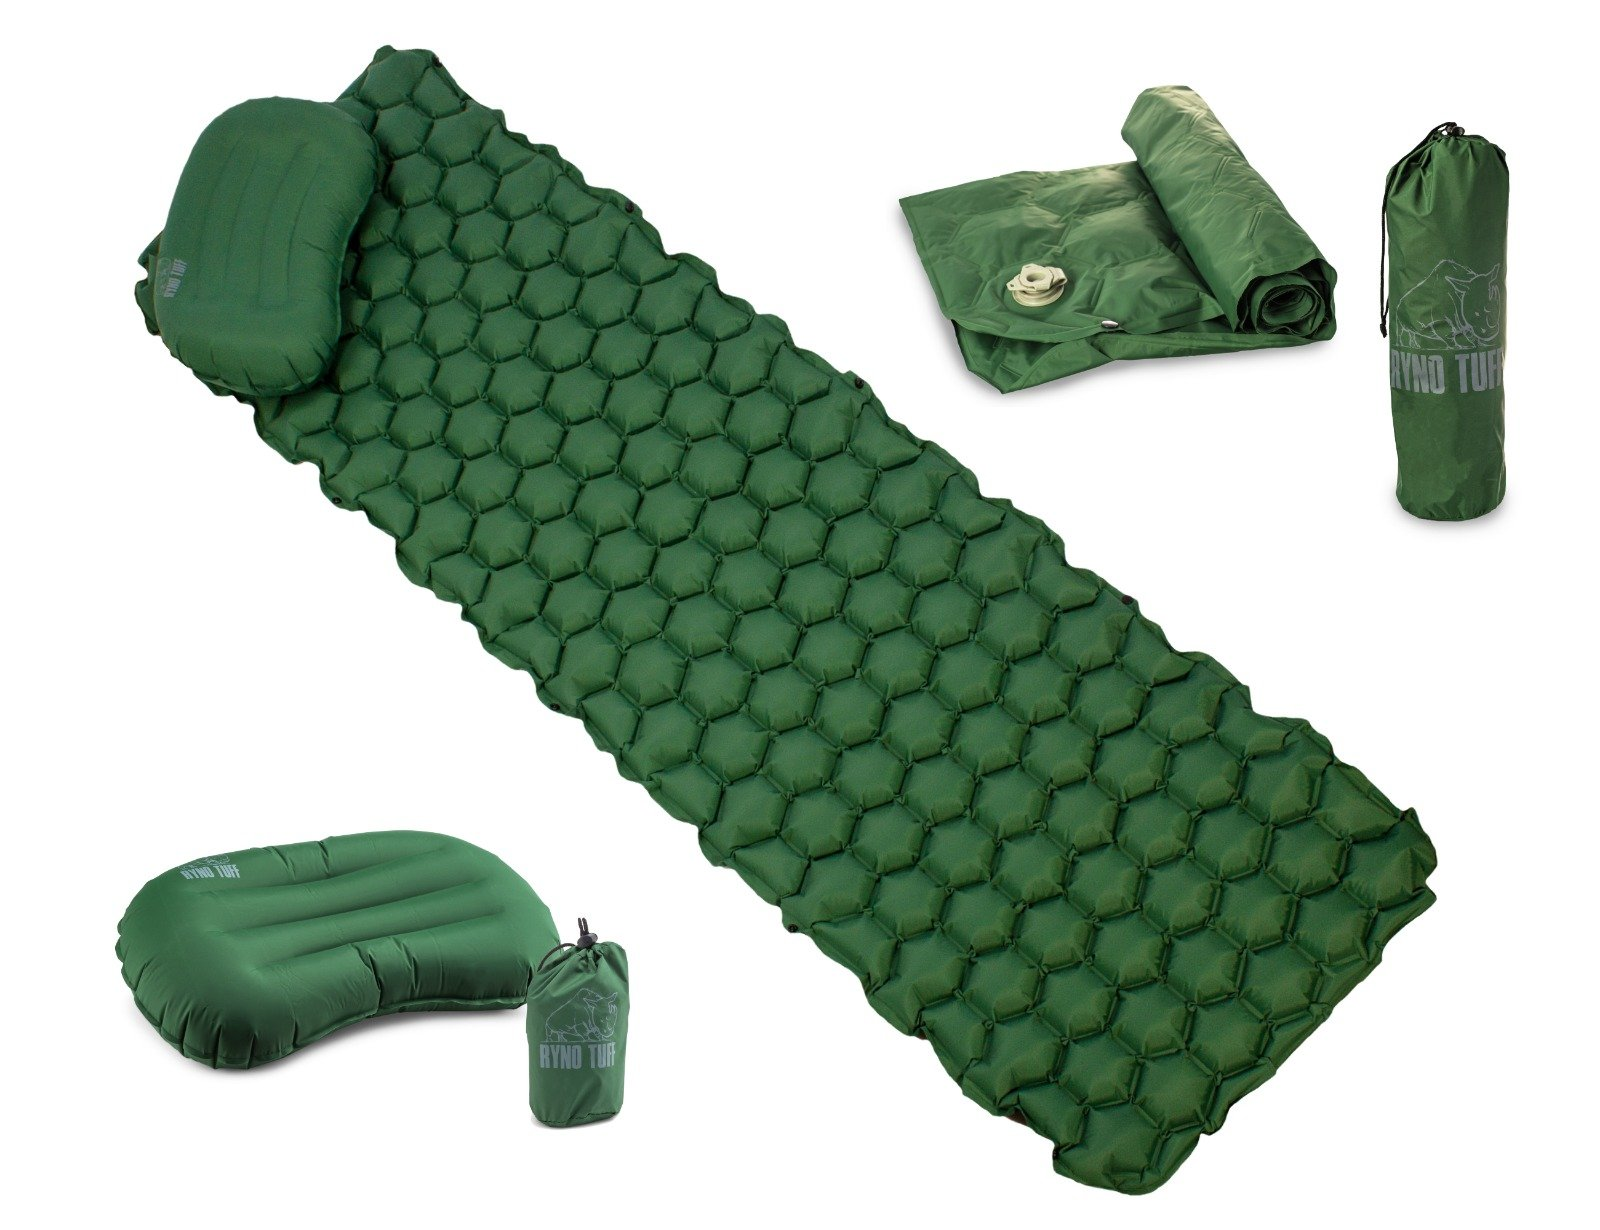 Ryno Tuff Ultralight Sleeping Pad Set - Large, Wide, Tough, Waterproof and Durable Yet Lightweight and Compact, Free Bonus Travel Pillow Included - A Must Have While Camping, Hiking or Backpacking